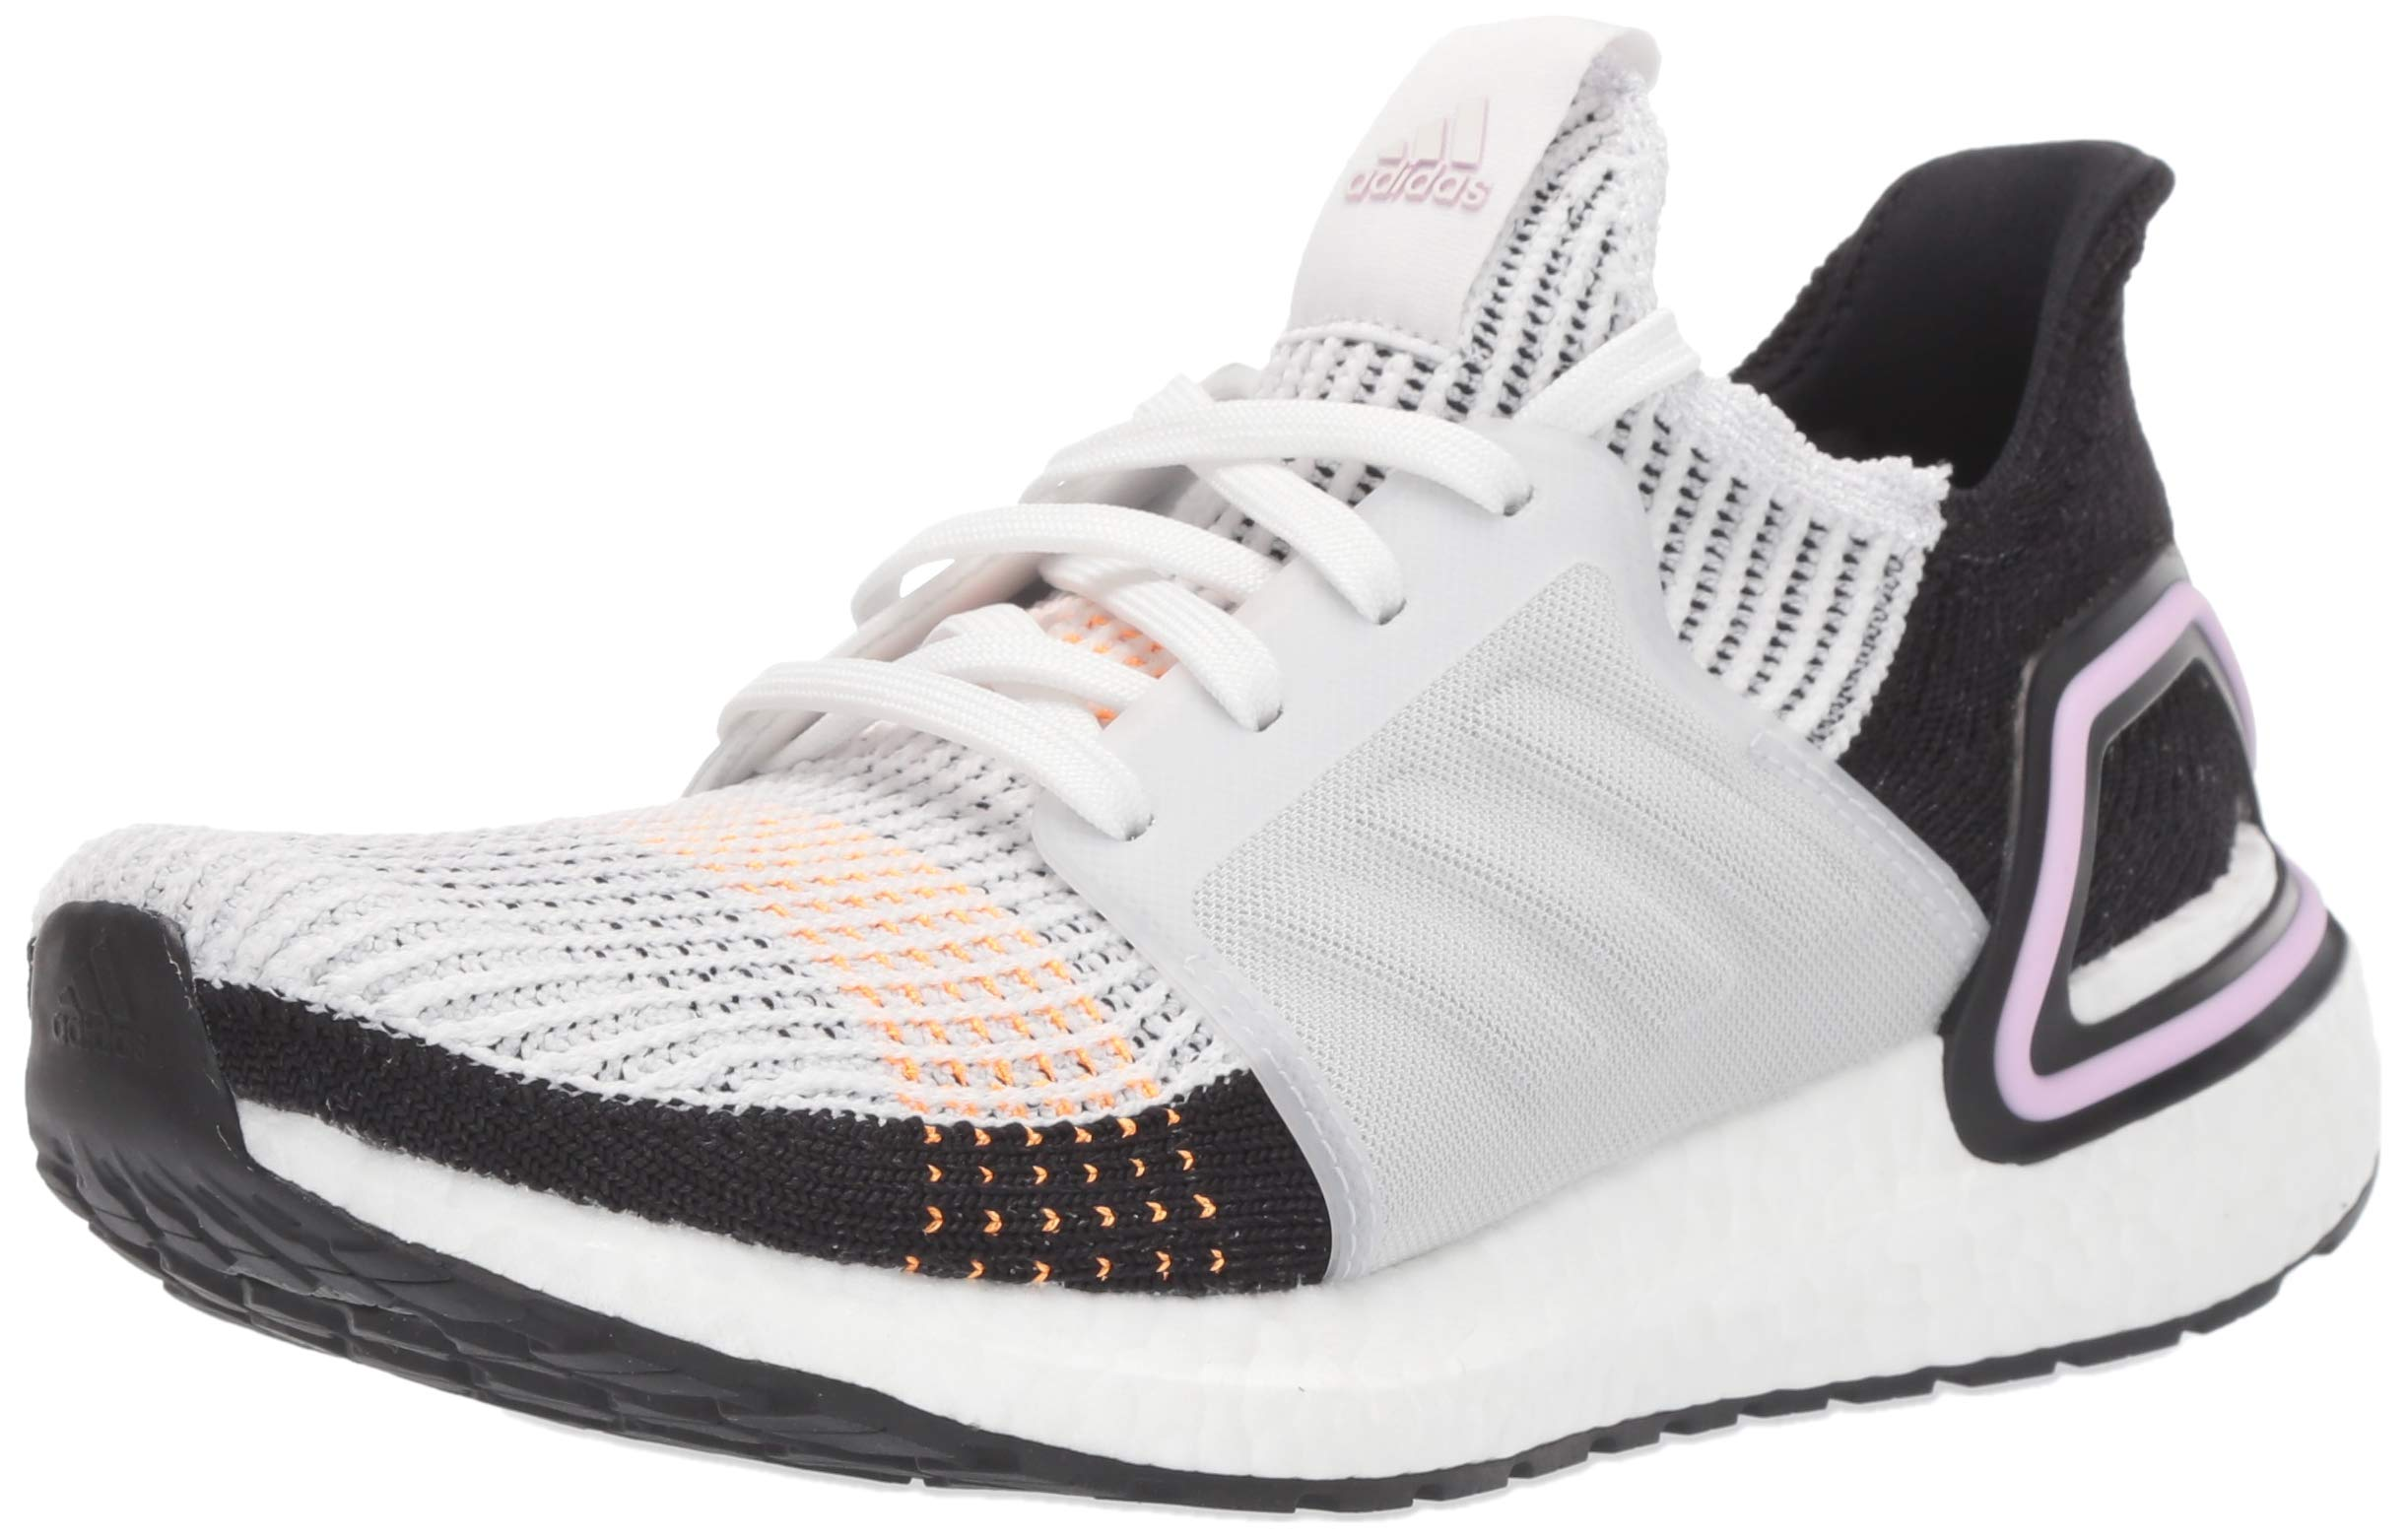 adidas Women's Ultraboost 19 Running Shoe, Crystal White/Black, 10 M US by adidas